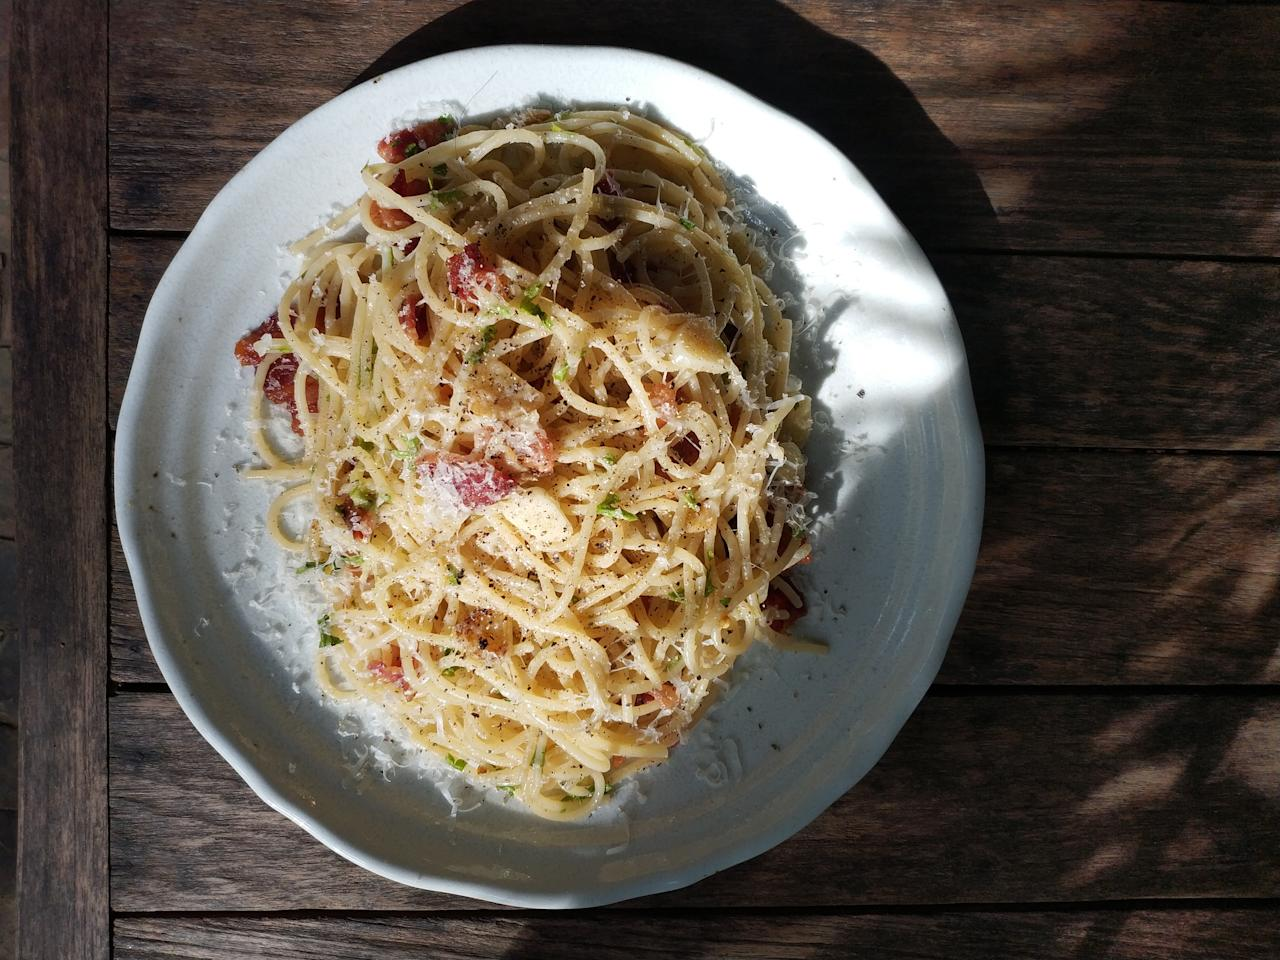 <p>According to experts, when you pop cooked pasta in the freezer you're compromising texture and flavour. In cold temperatures, moisture is a natural component which turns the leftovers into bloated, soggy, indiscernible noodles. </p>